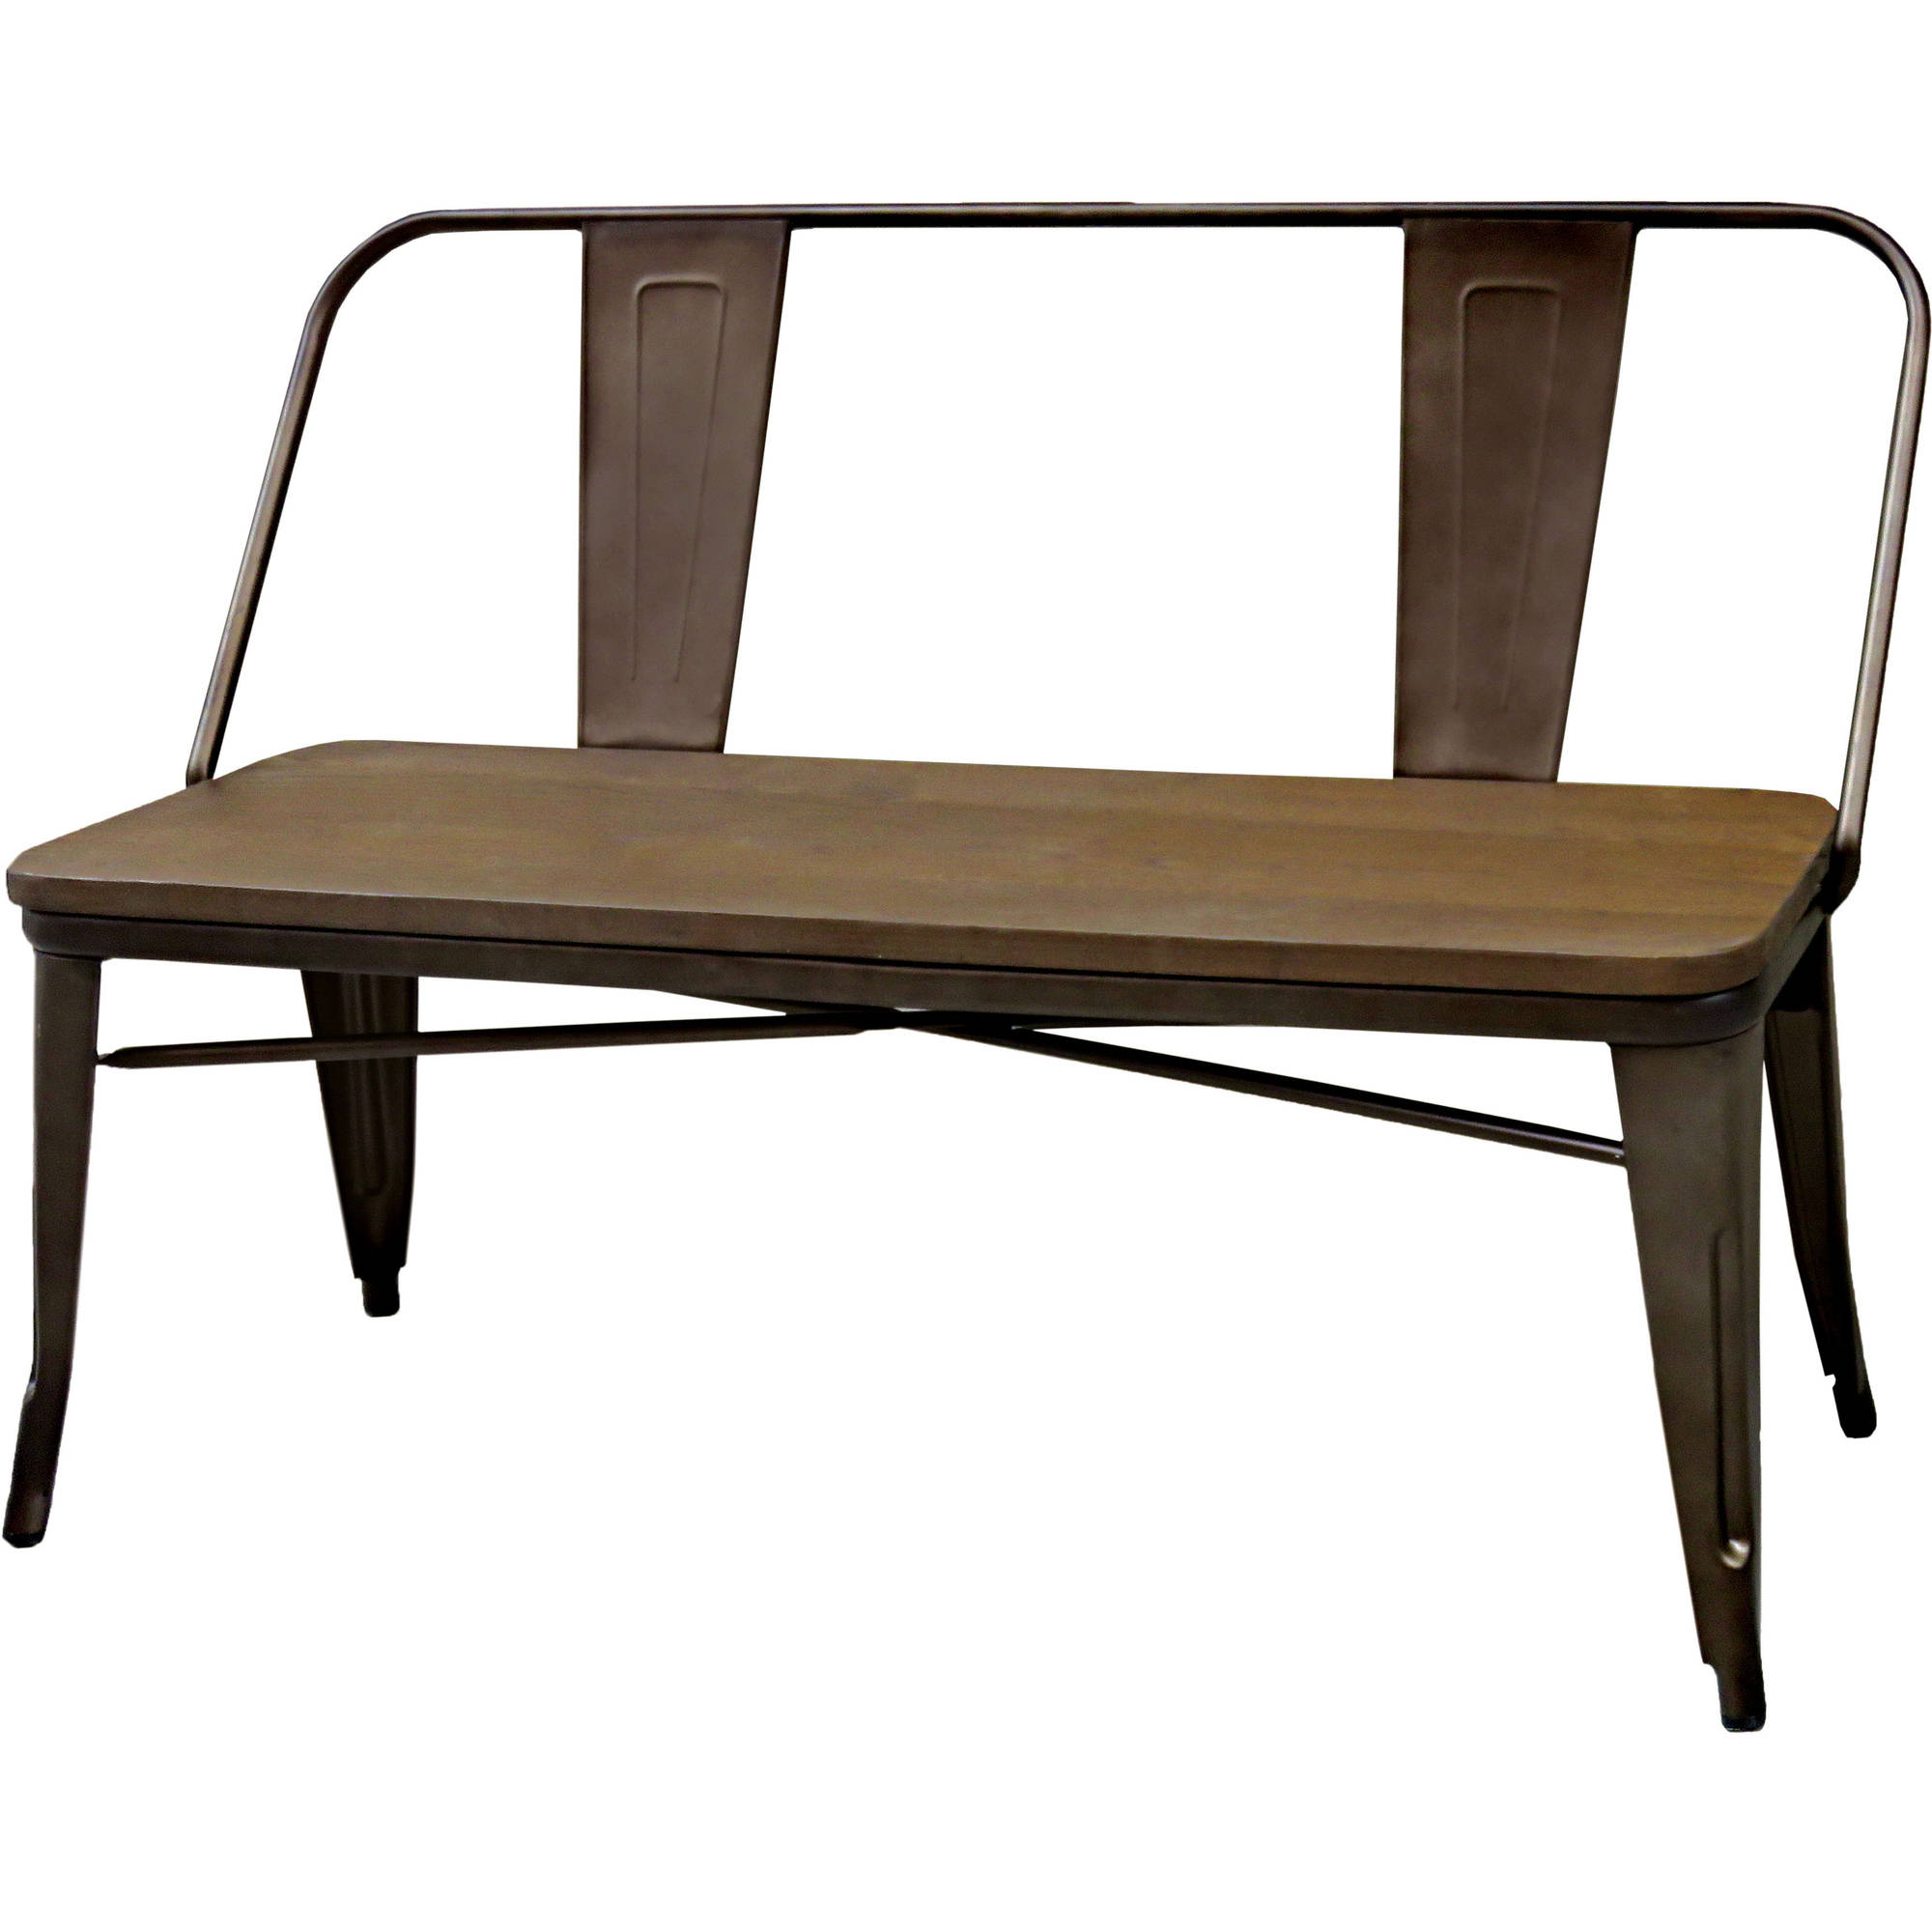 Furniture of America Fredrick Industrial Dining Bench, Natural Elm